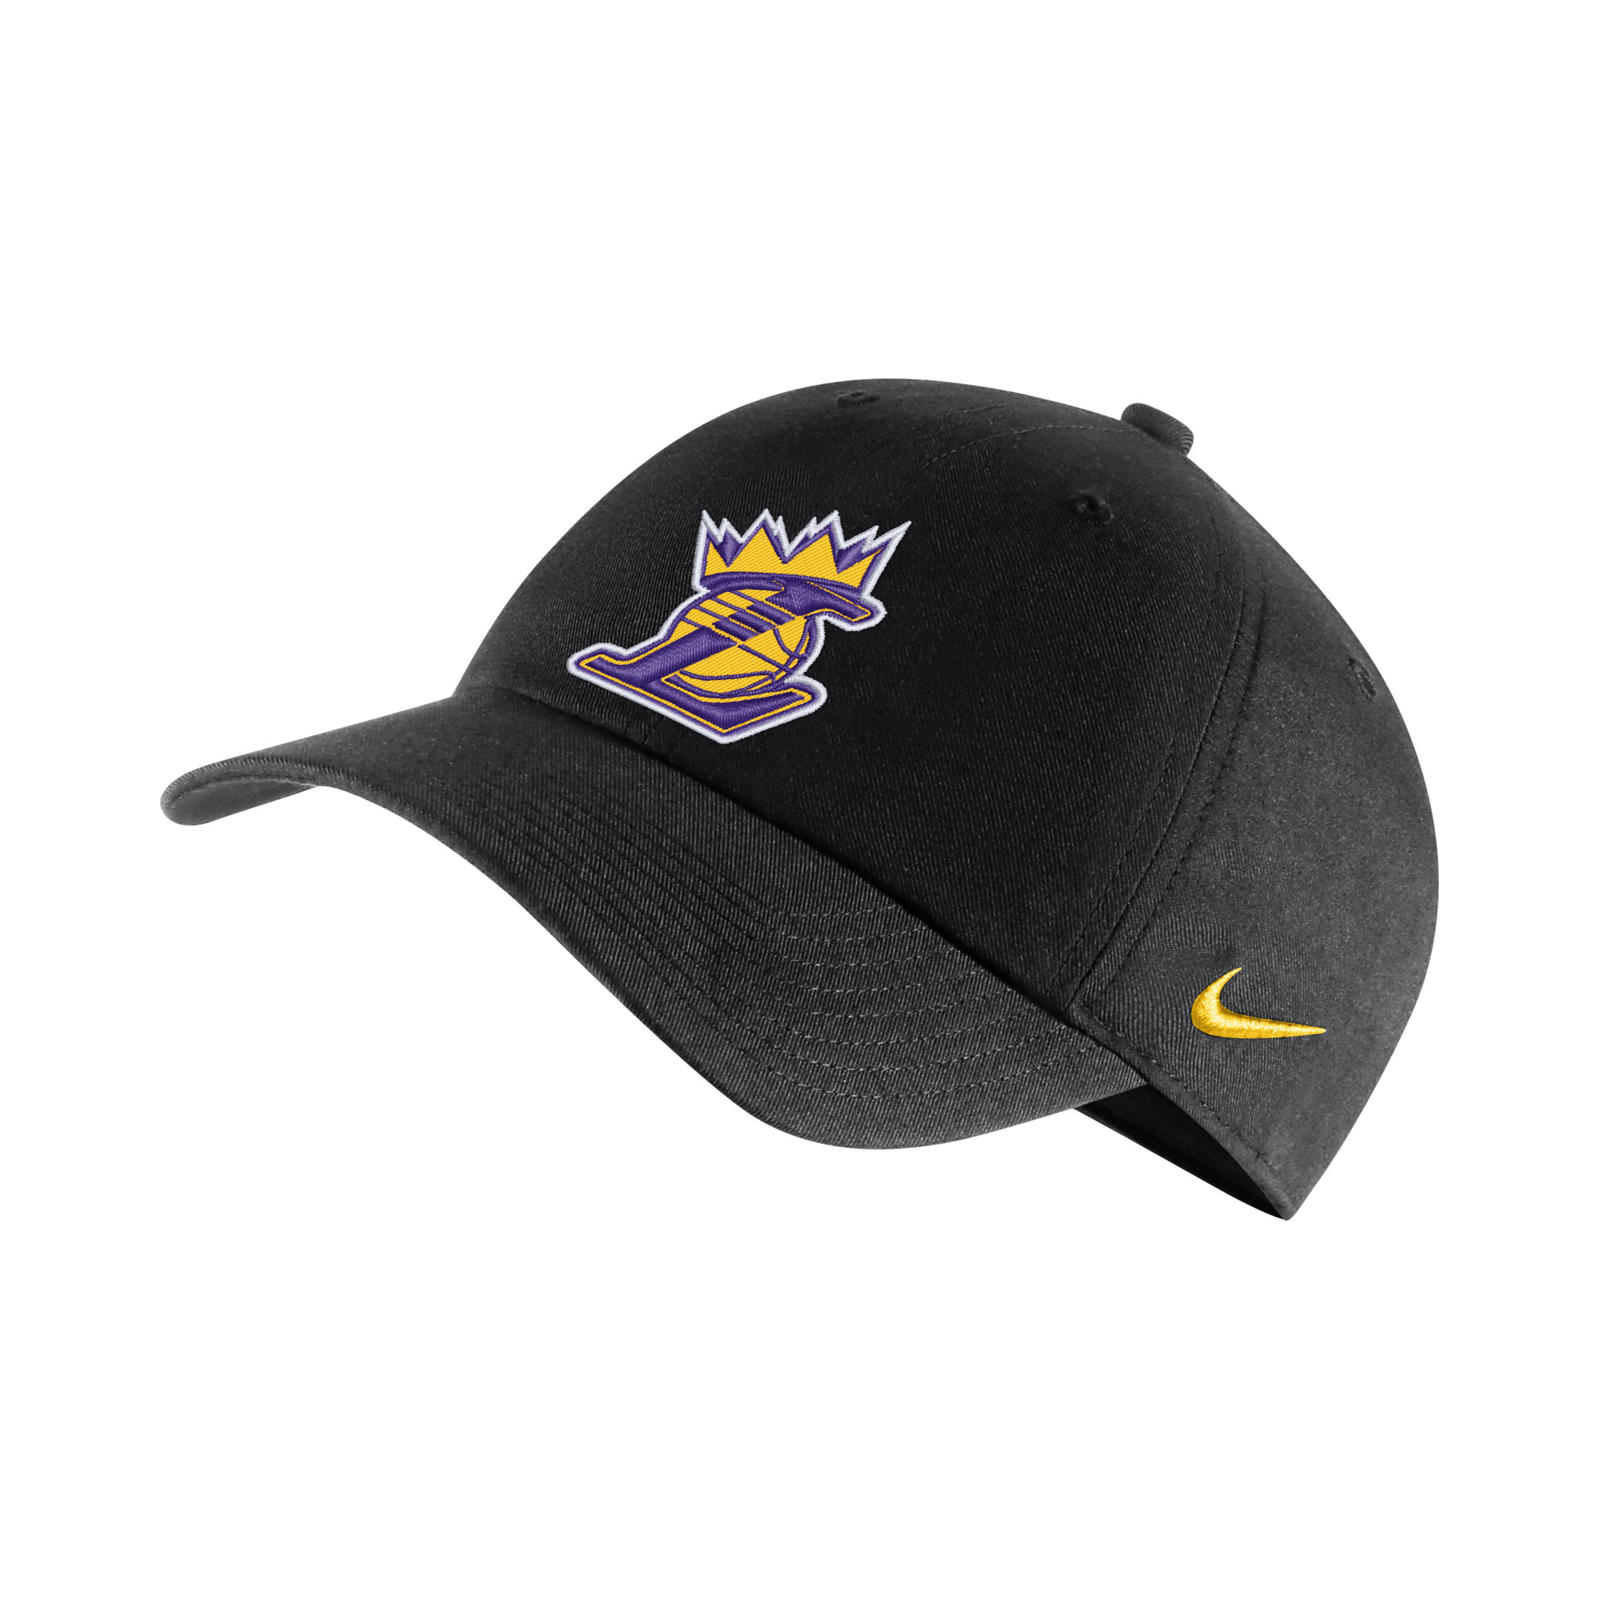 Nba lakersheritage86hat cj1662 010 a re square 1600